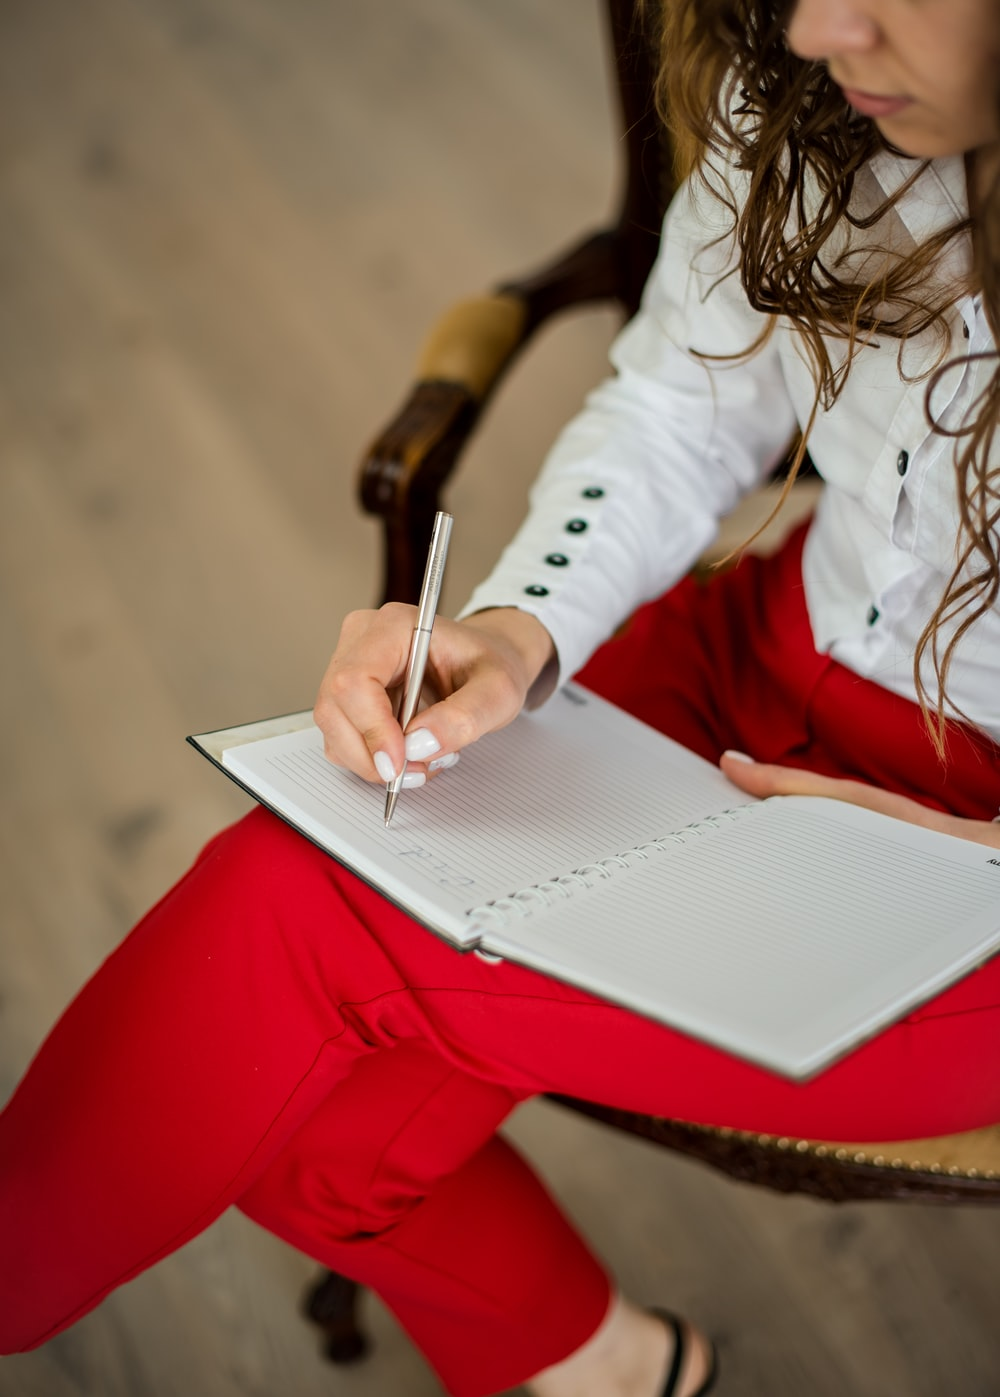 woman in white long sleeve shirt writing on white paper